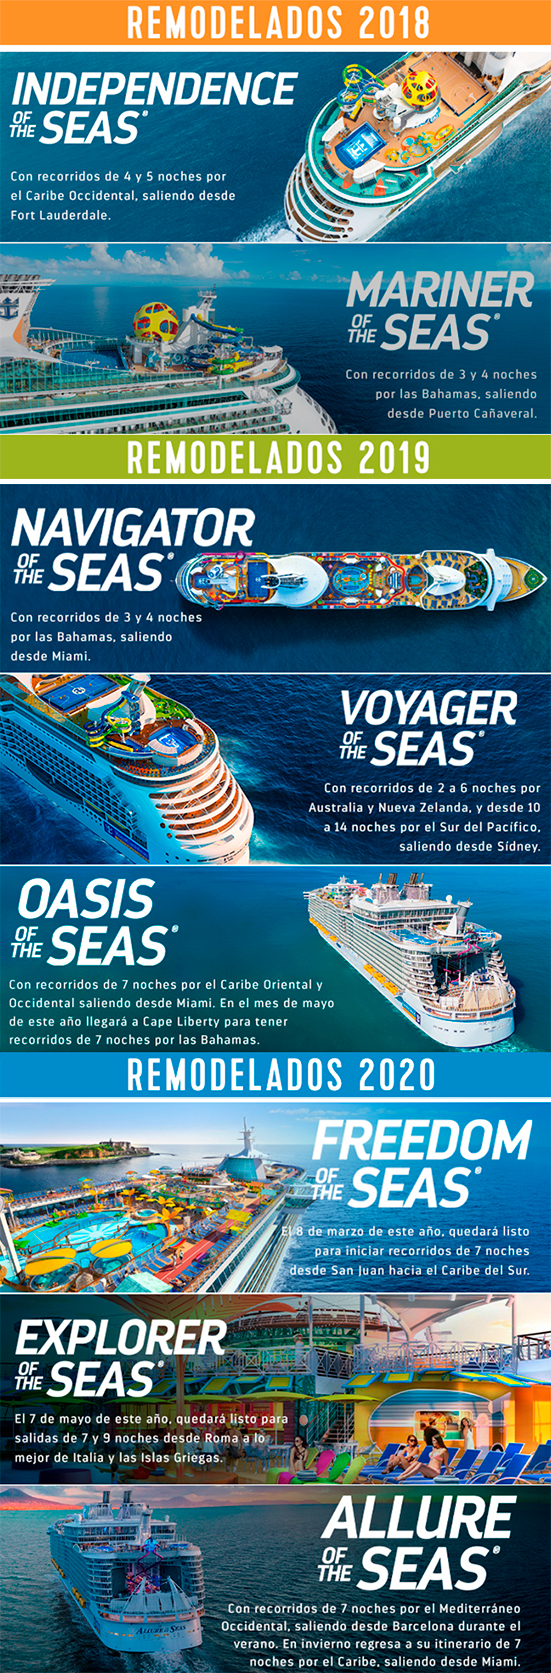 Remodelados Royal Caribbean Royal Amplified